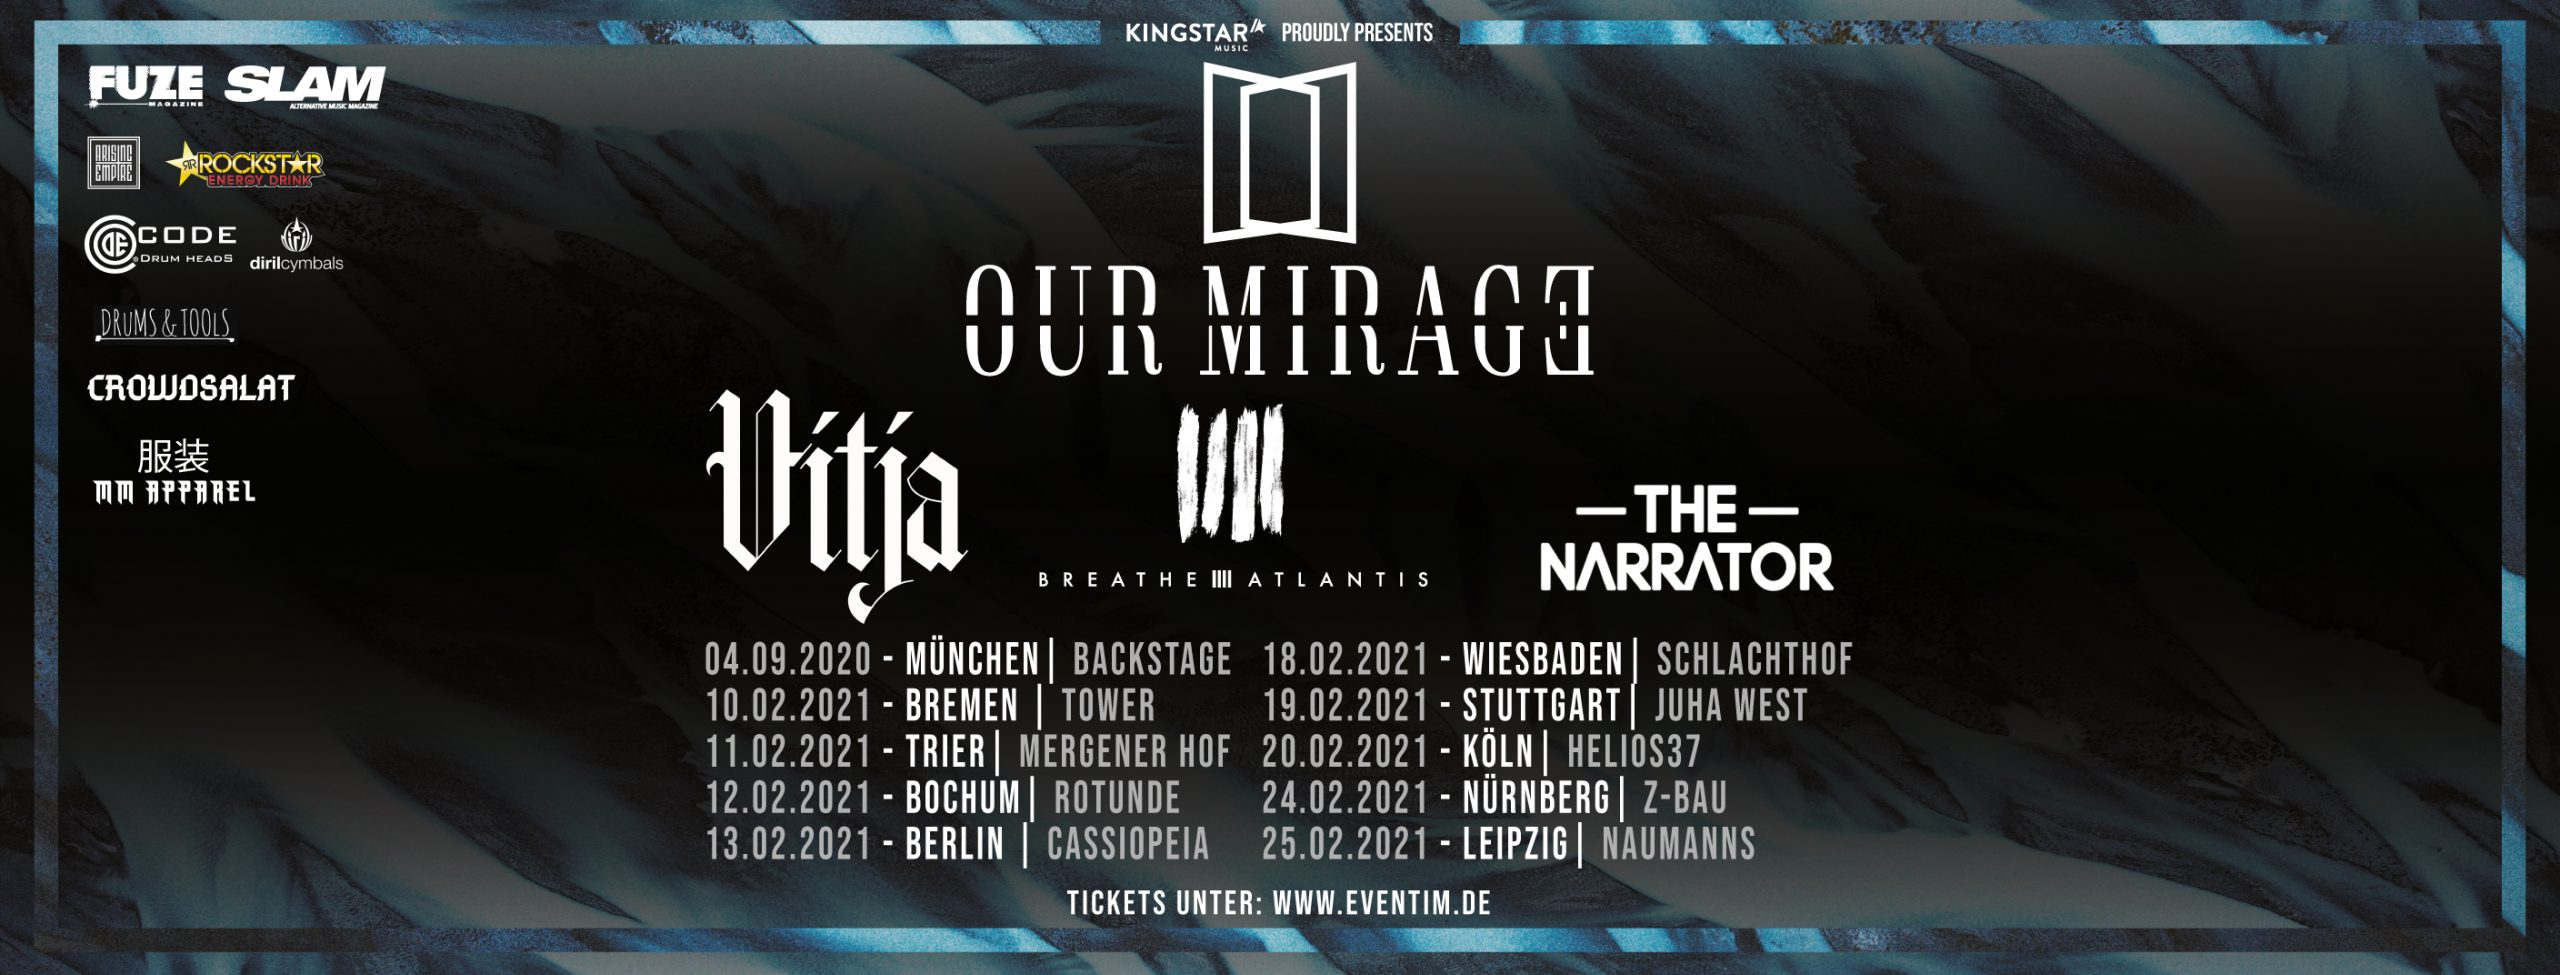 Our Mirage, Vitja, Breathe Atlantis